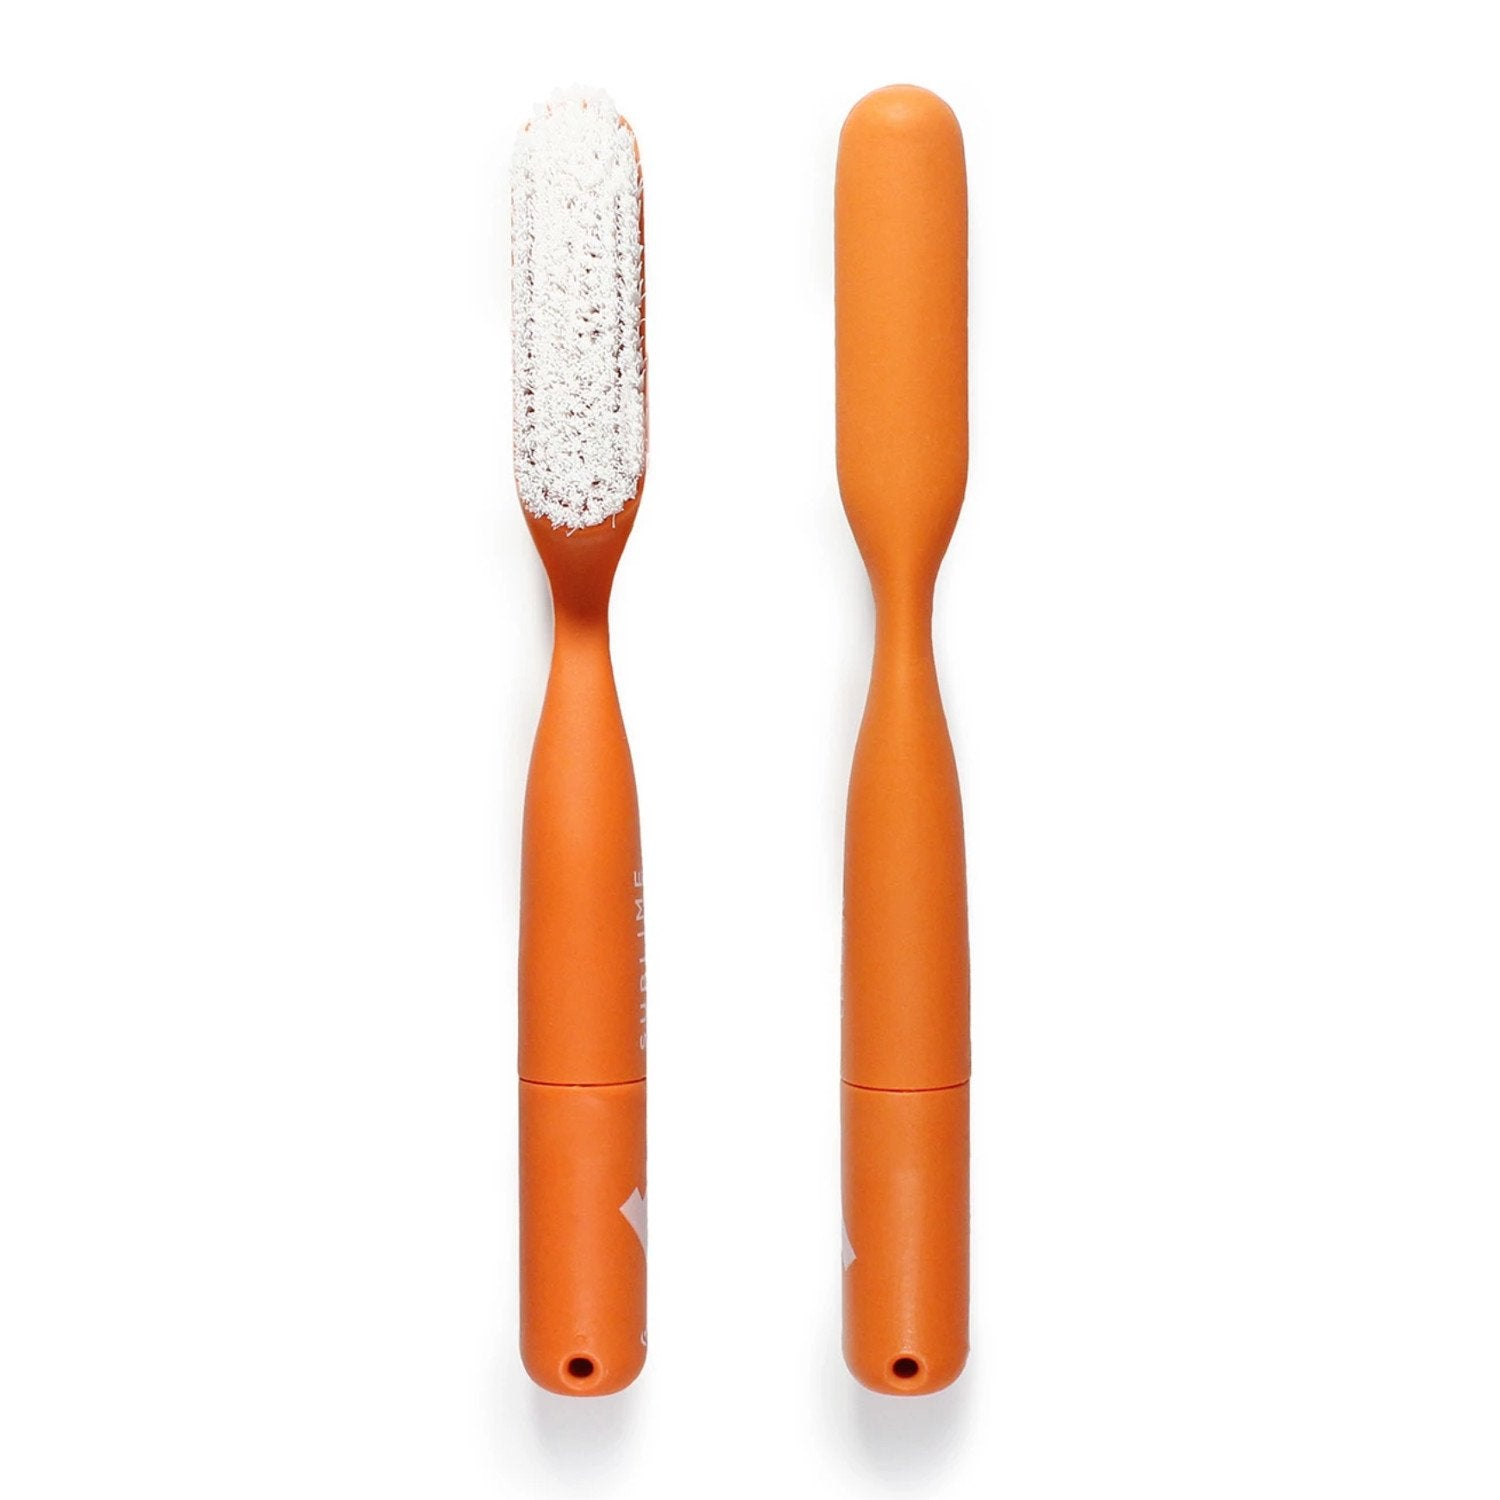 Sublime Climbing Nylon Brush, Front and back view with a Orange handle and white bristles